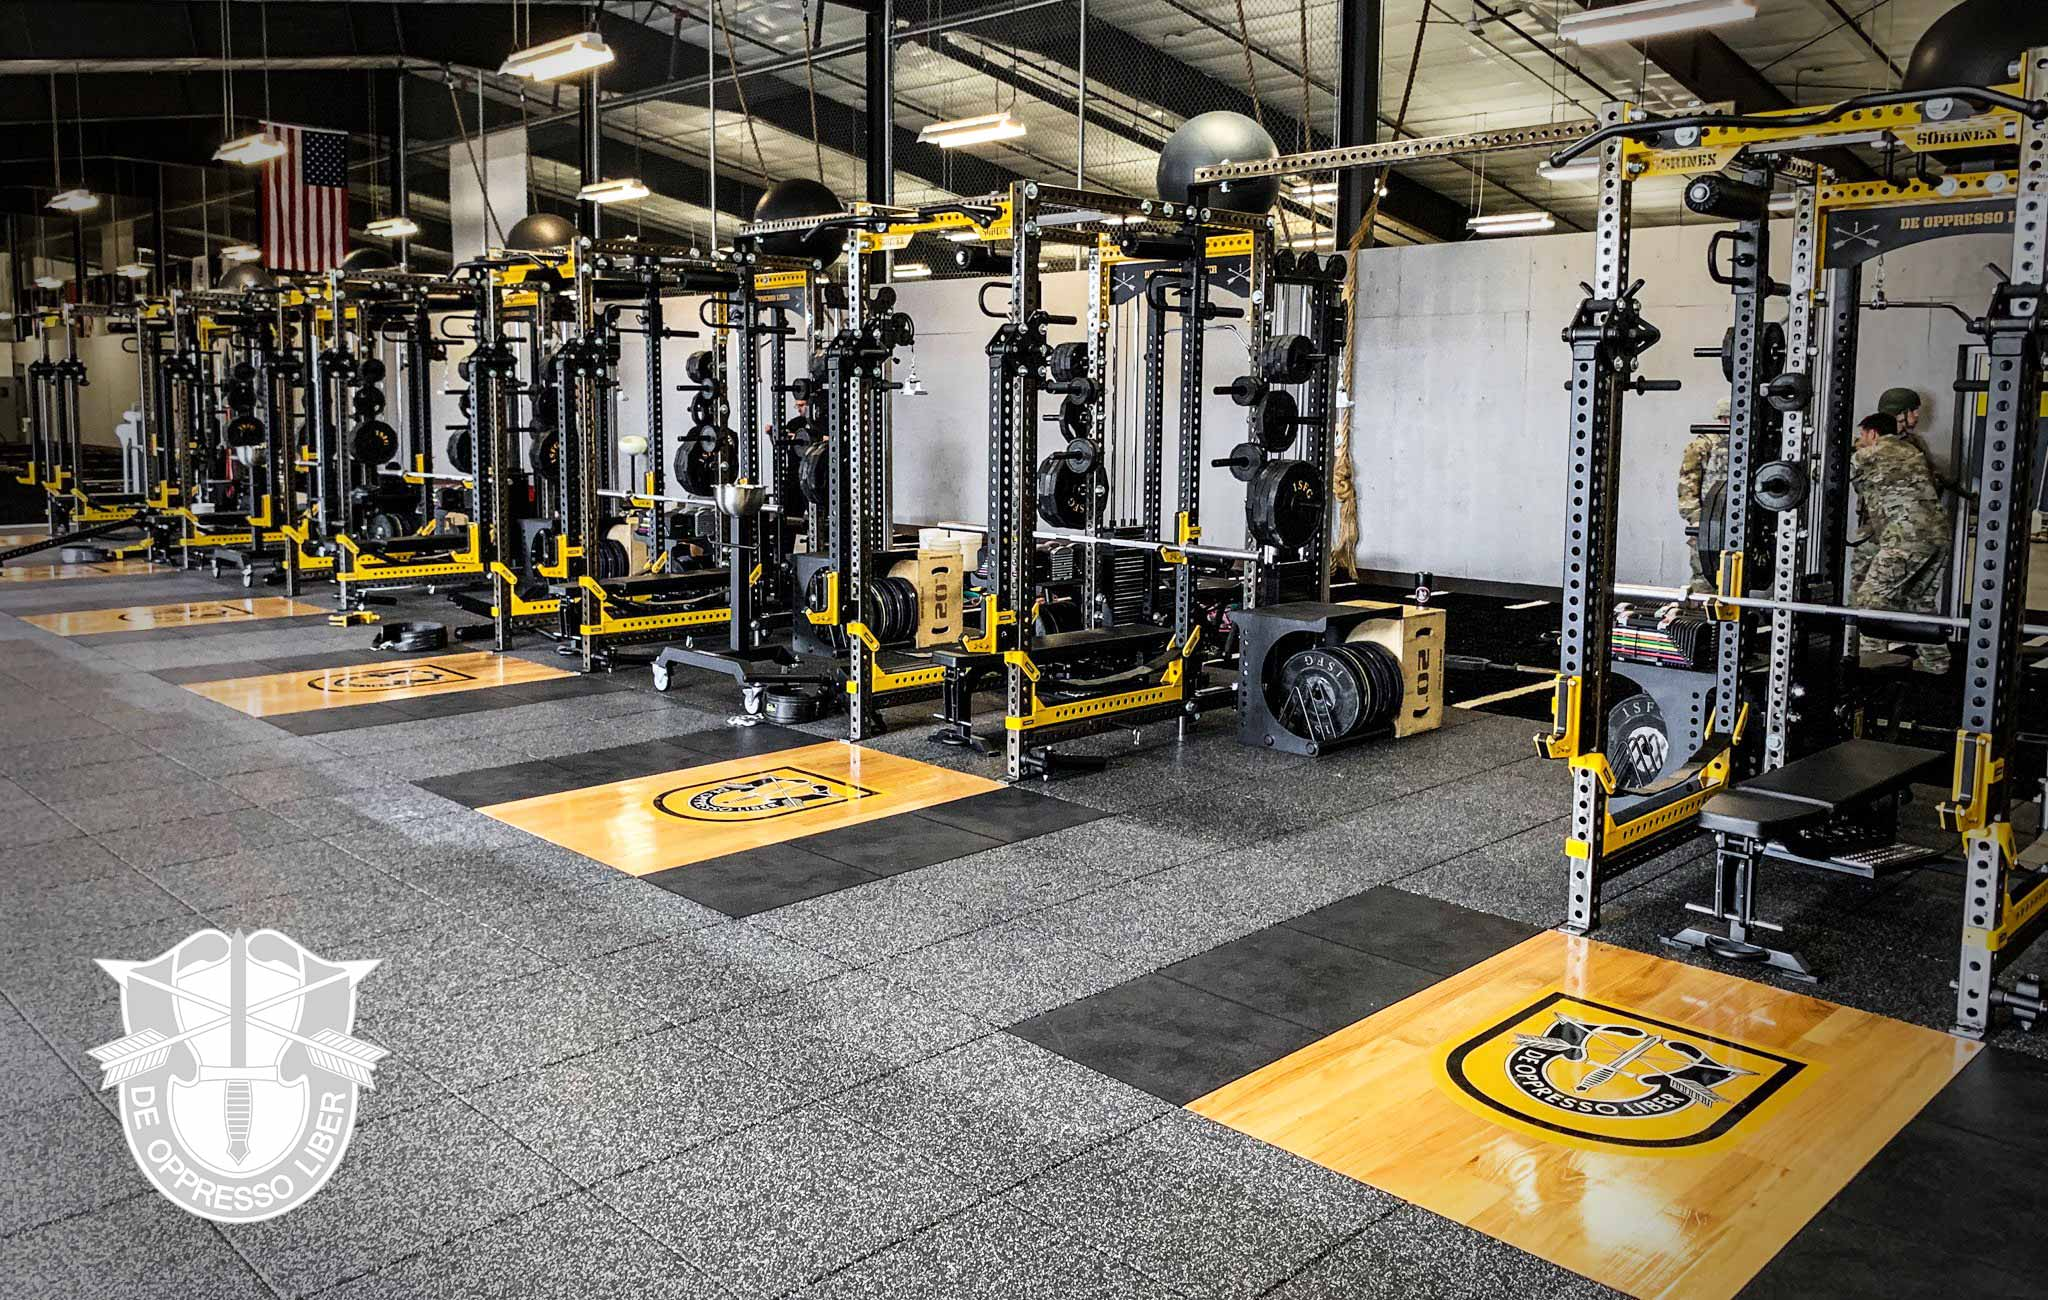 1st SFG Sorinex strength and conditioning facility